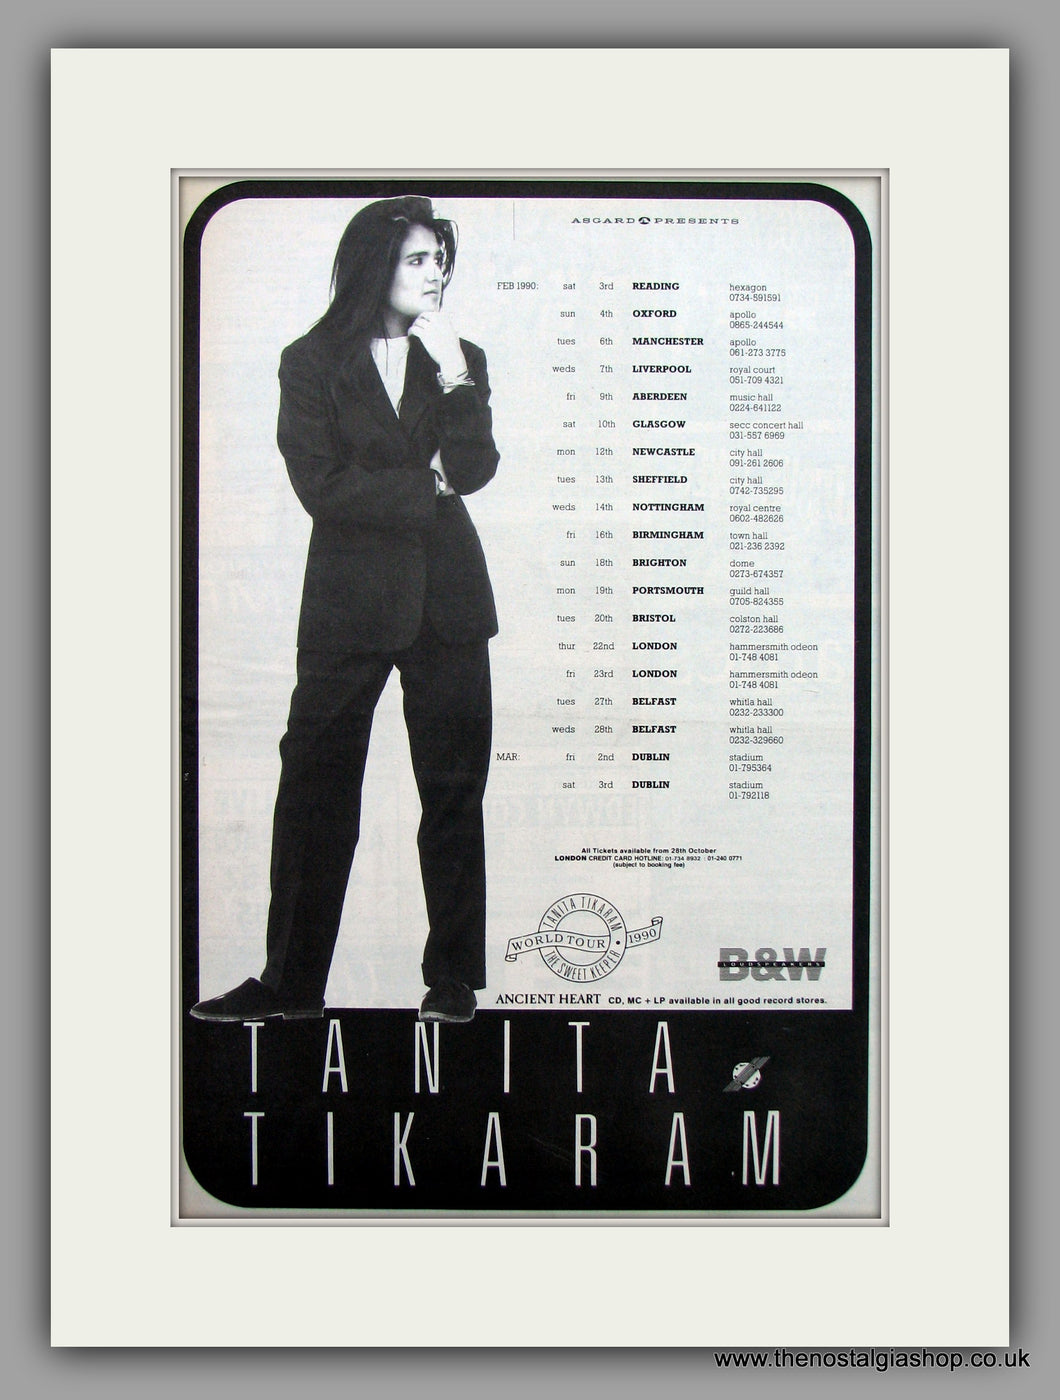 Tanita Tikaram Tour Dates.  Original Vintage Advert 1989 (ref AD10560)